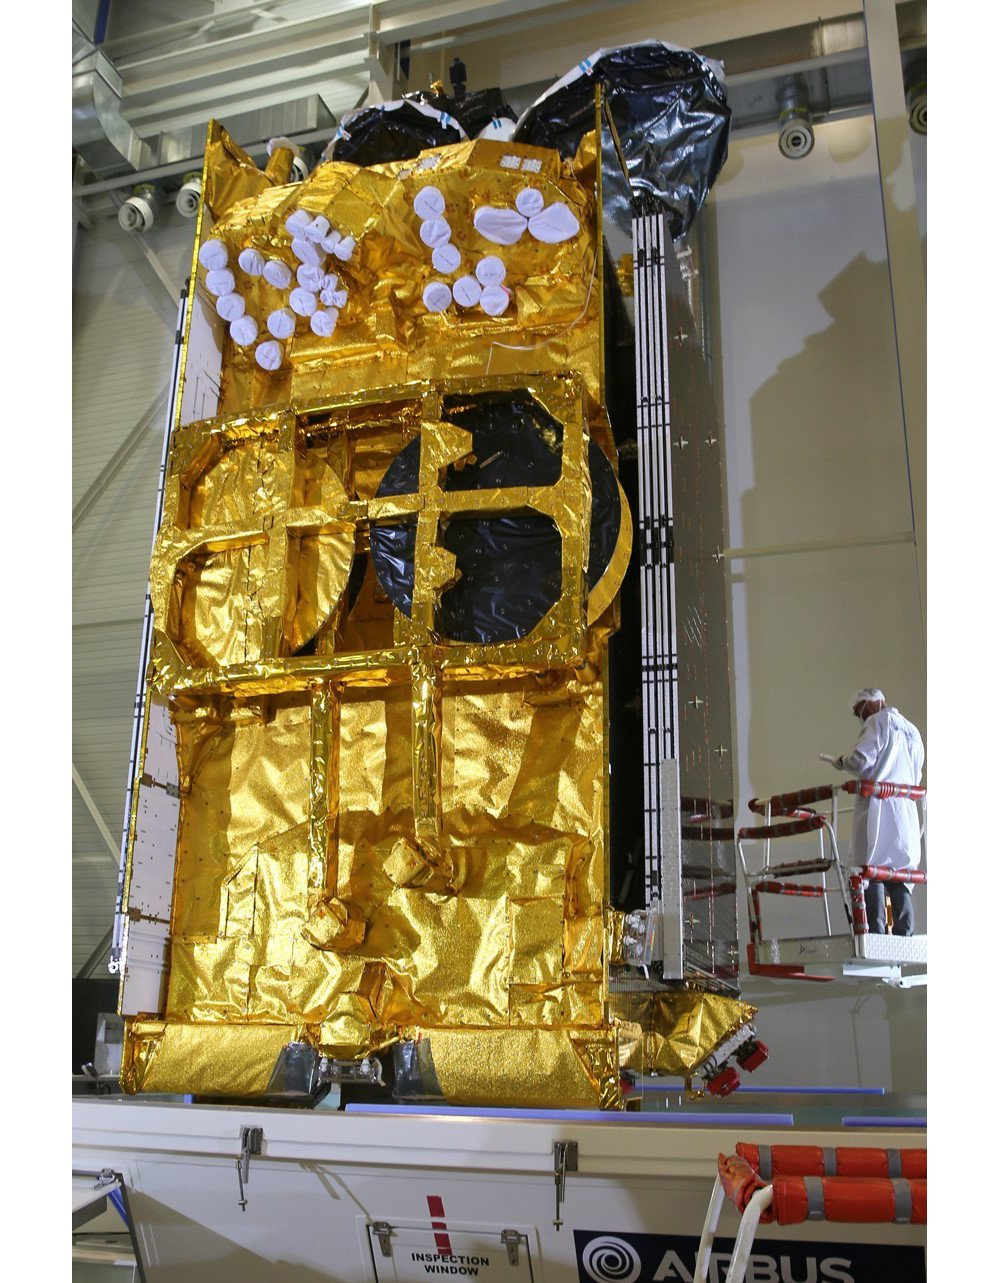 The Airbus-produced SKY Brasil-1 telecommunications satellite is evaluated in a clean room setting.